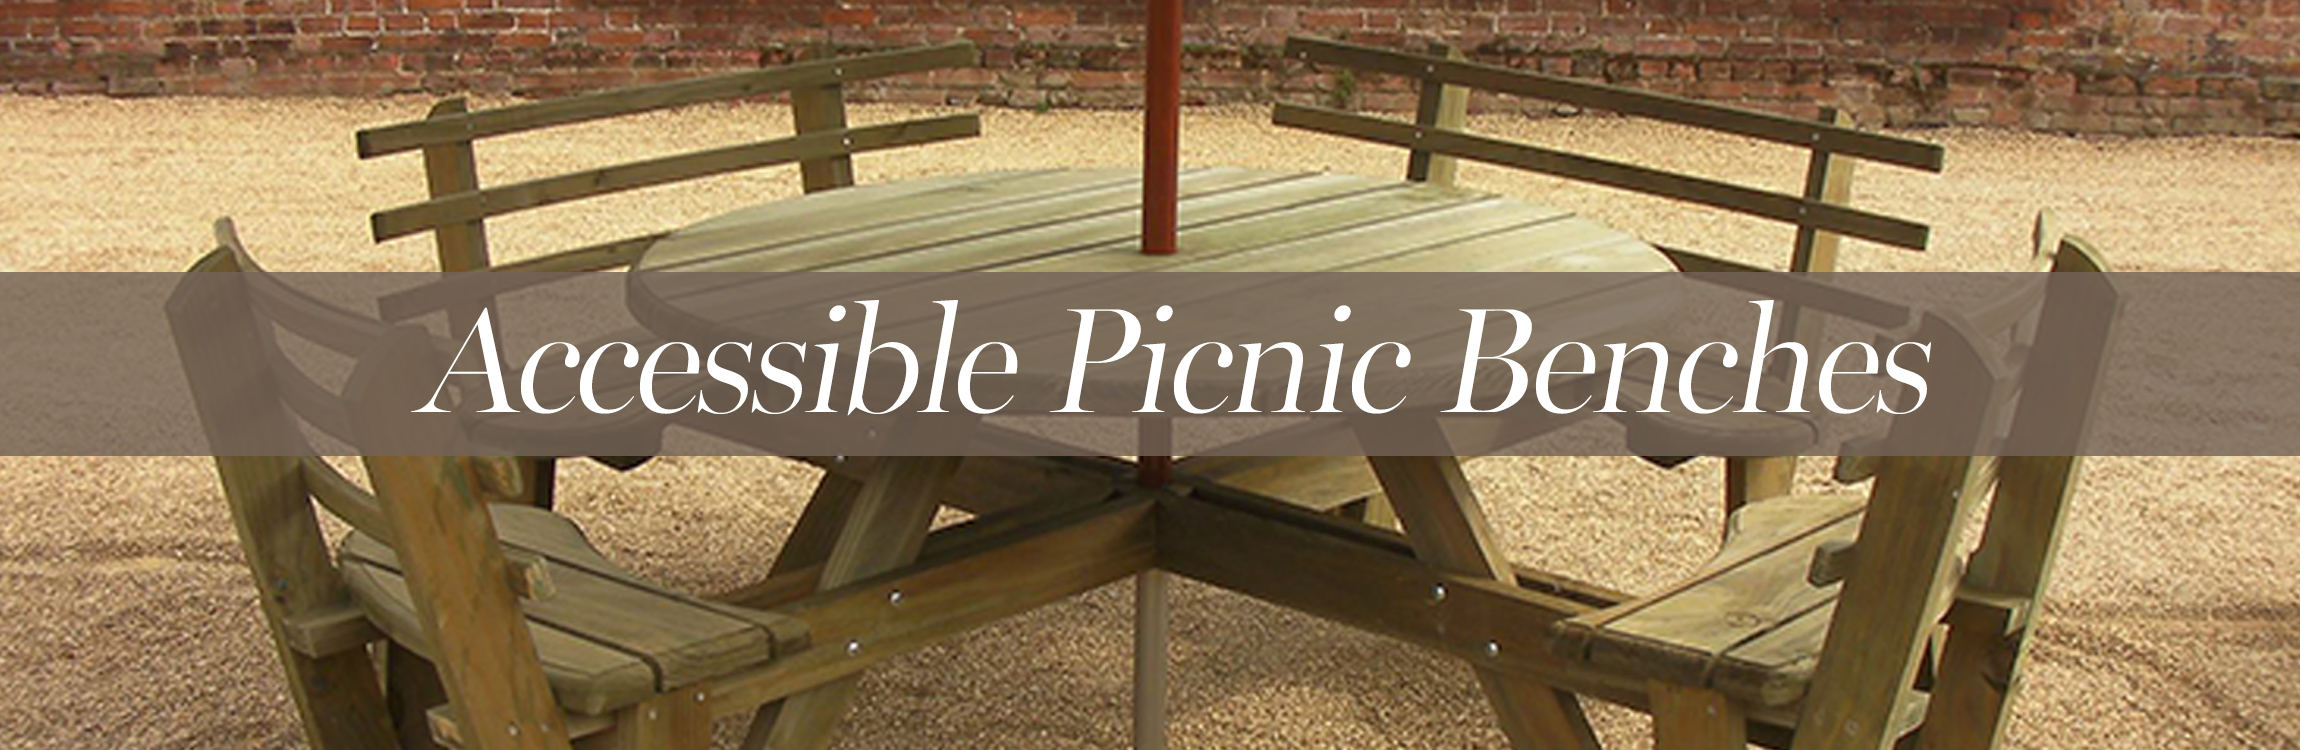 Accessible Picnic Benches